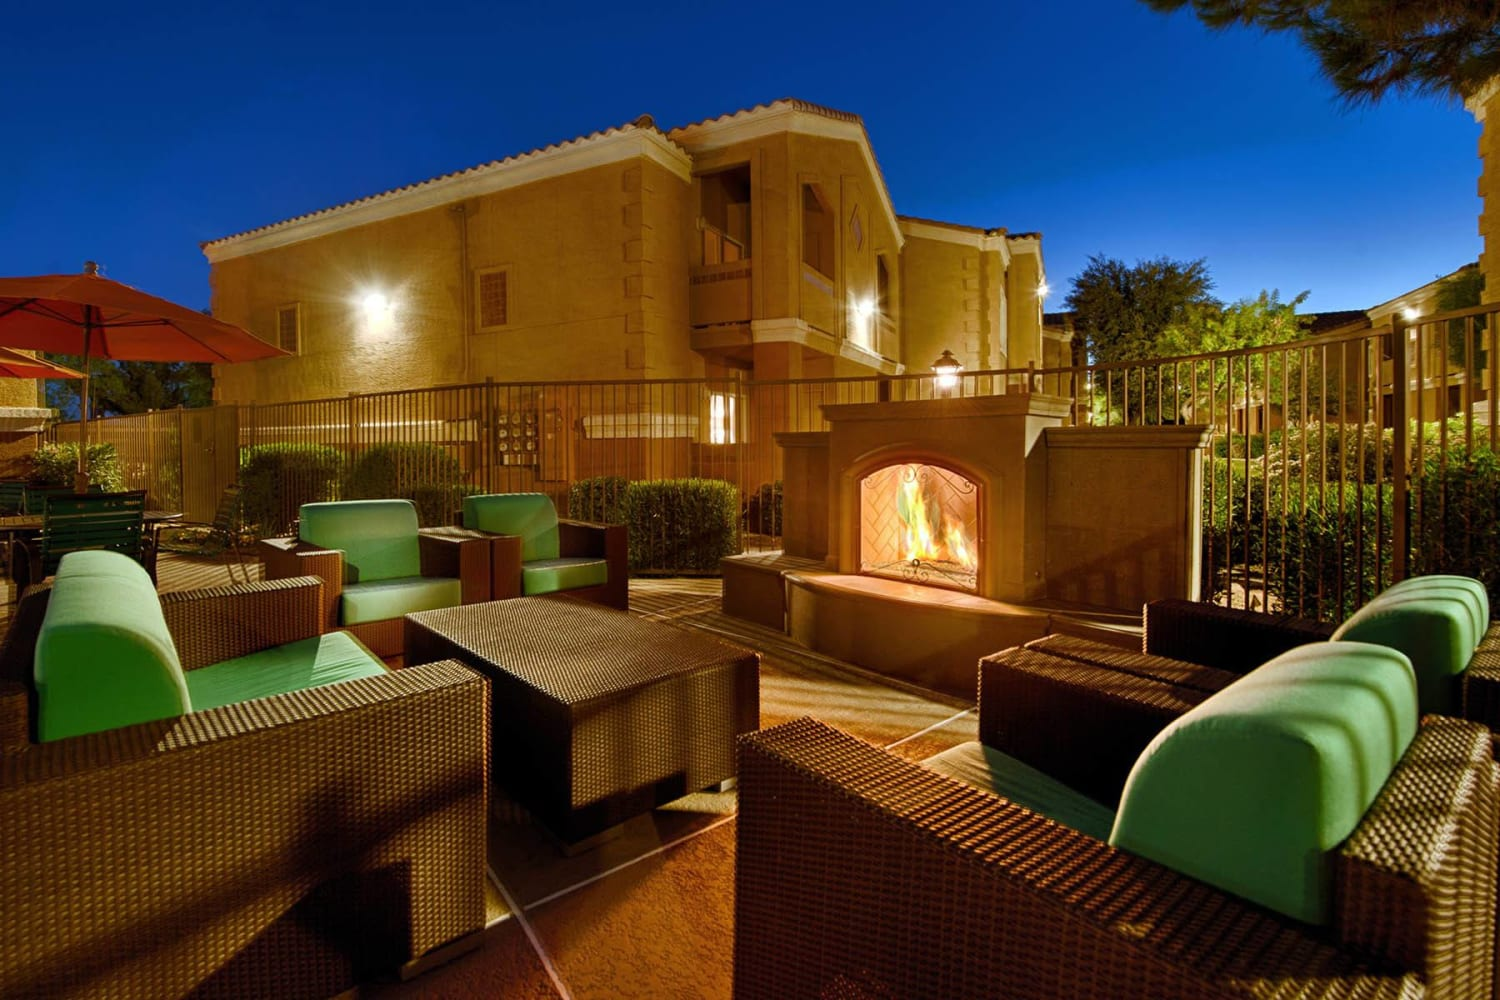 Patio with warm fireplace at 2150 Arizona Ave South in Chandler, Arizona